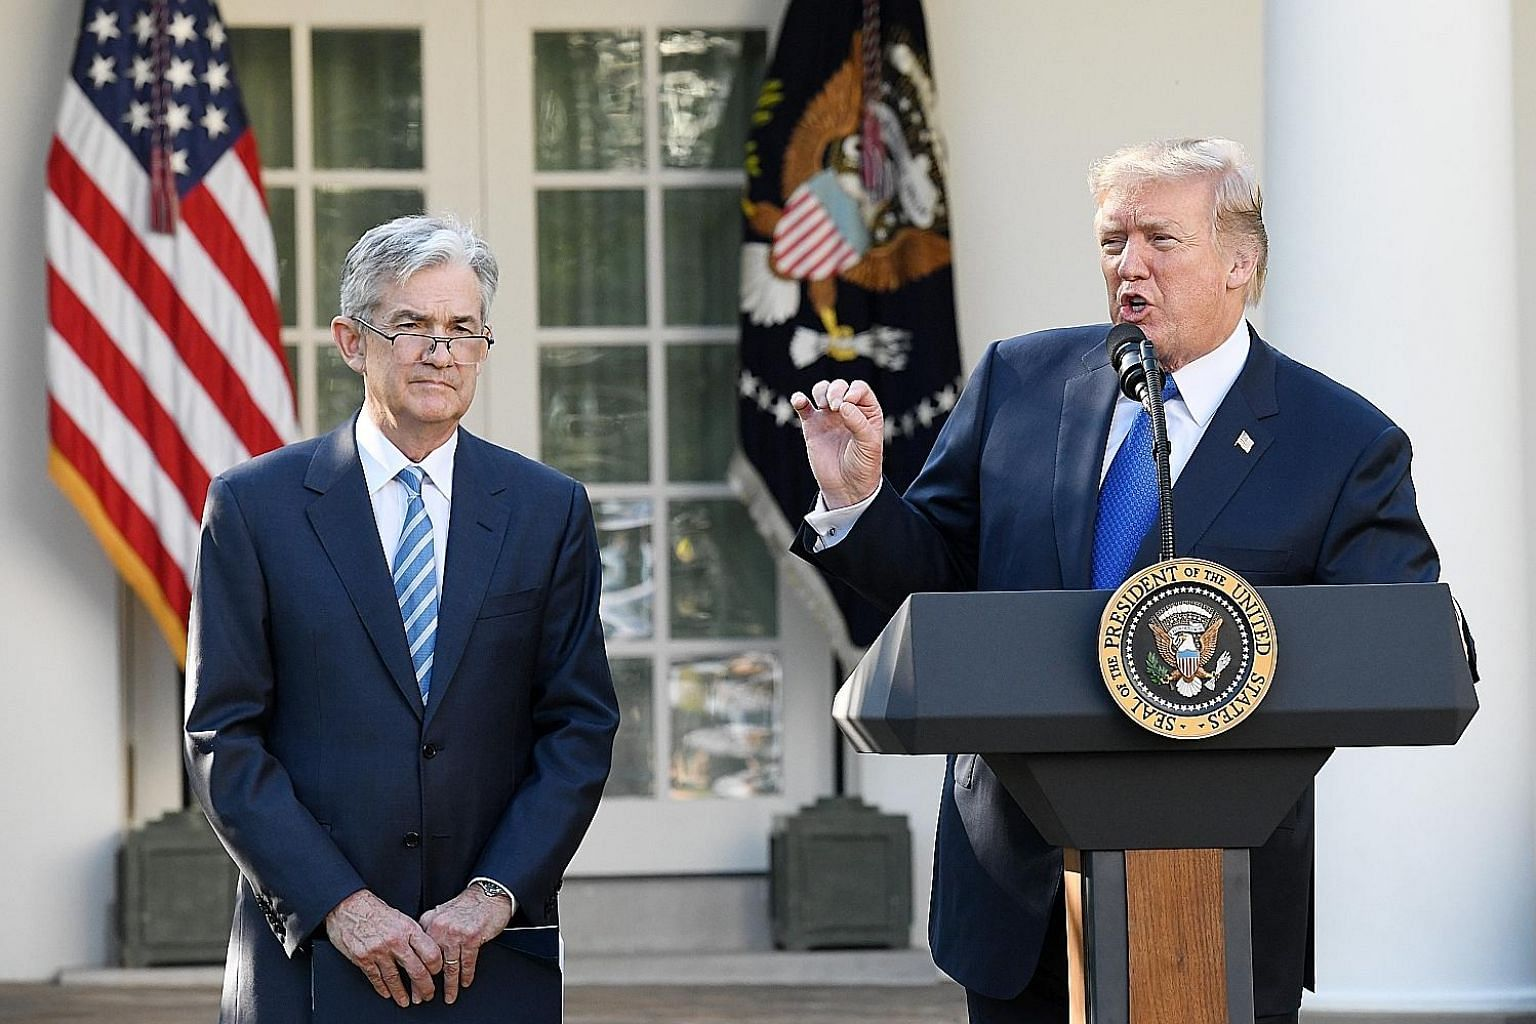 Considering President Donald Trump's record for doing the unexpected, there was always the chance he would pick an iconoclast to shake up the Federal Reserve. For once, he did not make waves, settling on Mr Jerome Powell (far left), a Washington insi